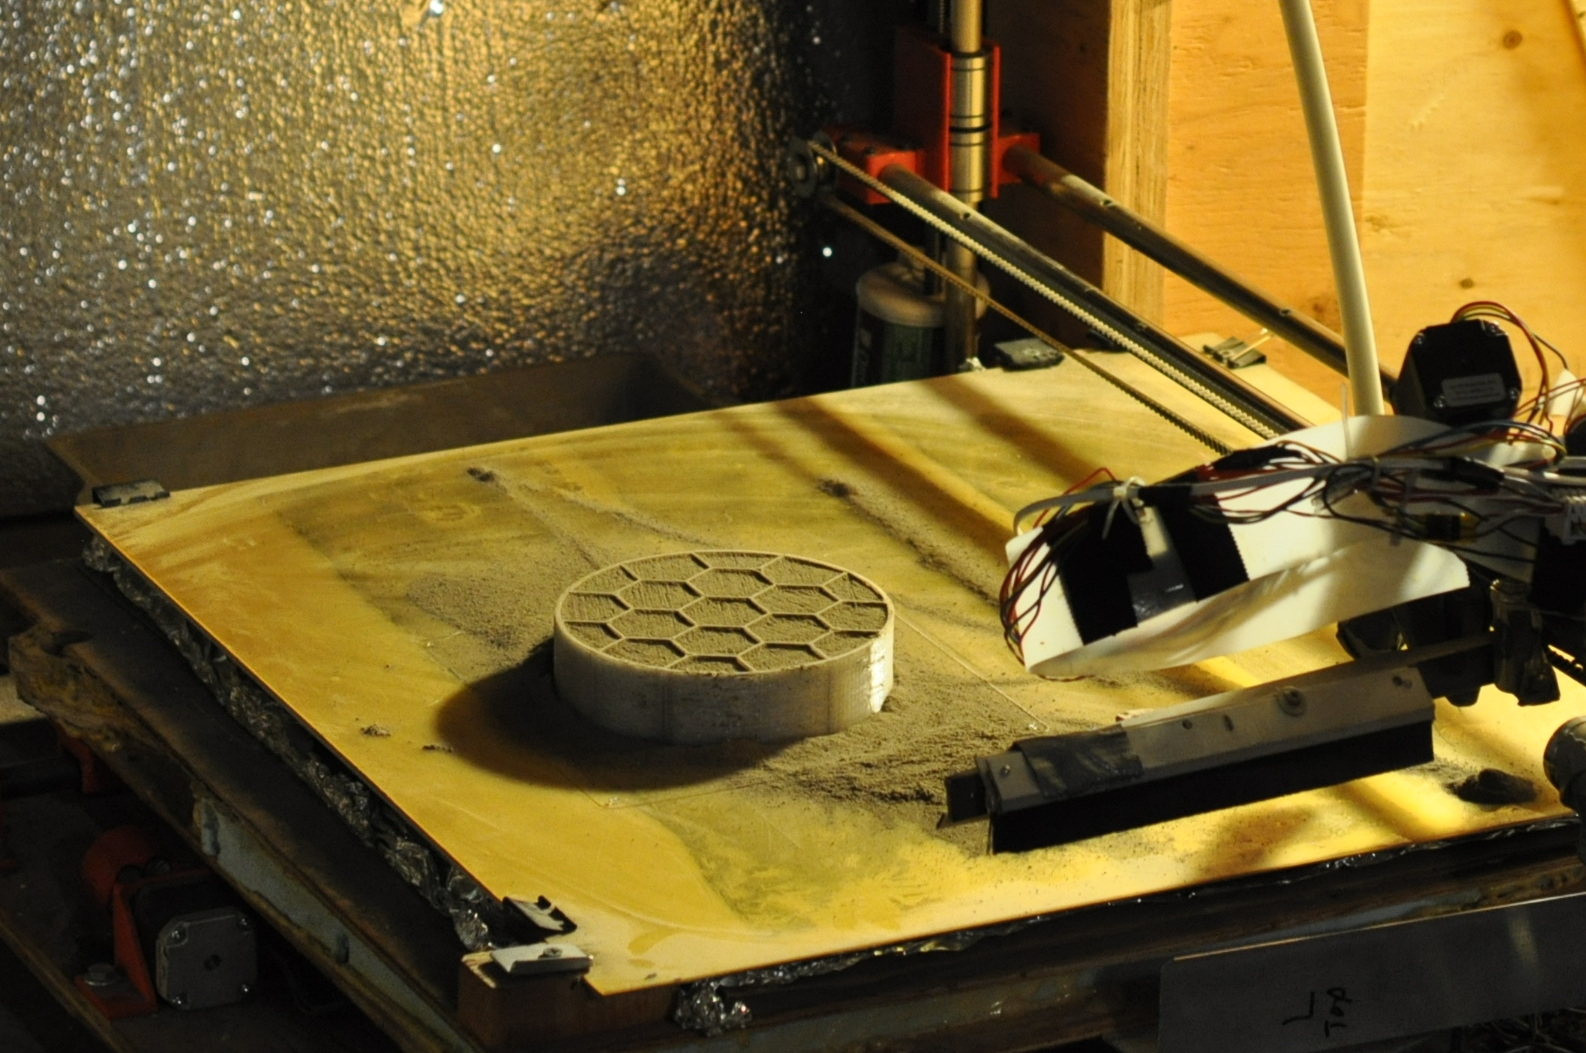 A 3D printer created by the University of Alaska team prints a cone for their entry in the Level 2, Phase 1 Compression Test Competition of NASA's 3D-Printed Habitat Competition. The university was awarded $14,070 for this stage of the challenge. - Image Credits: Courtesy of University of Alaska